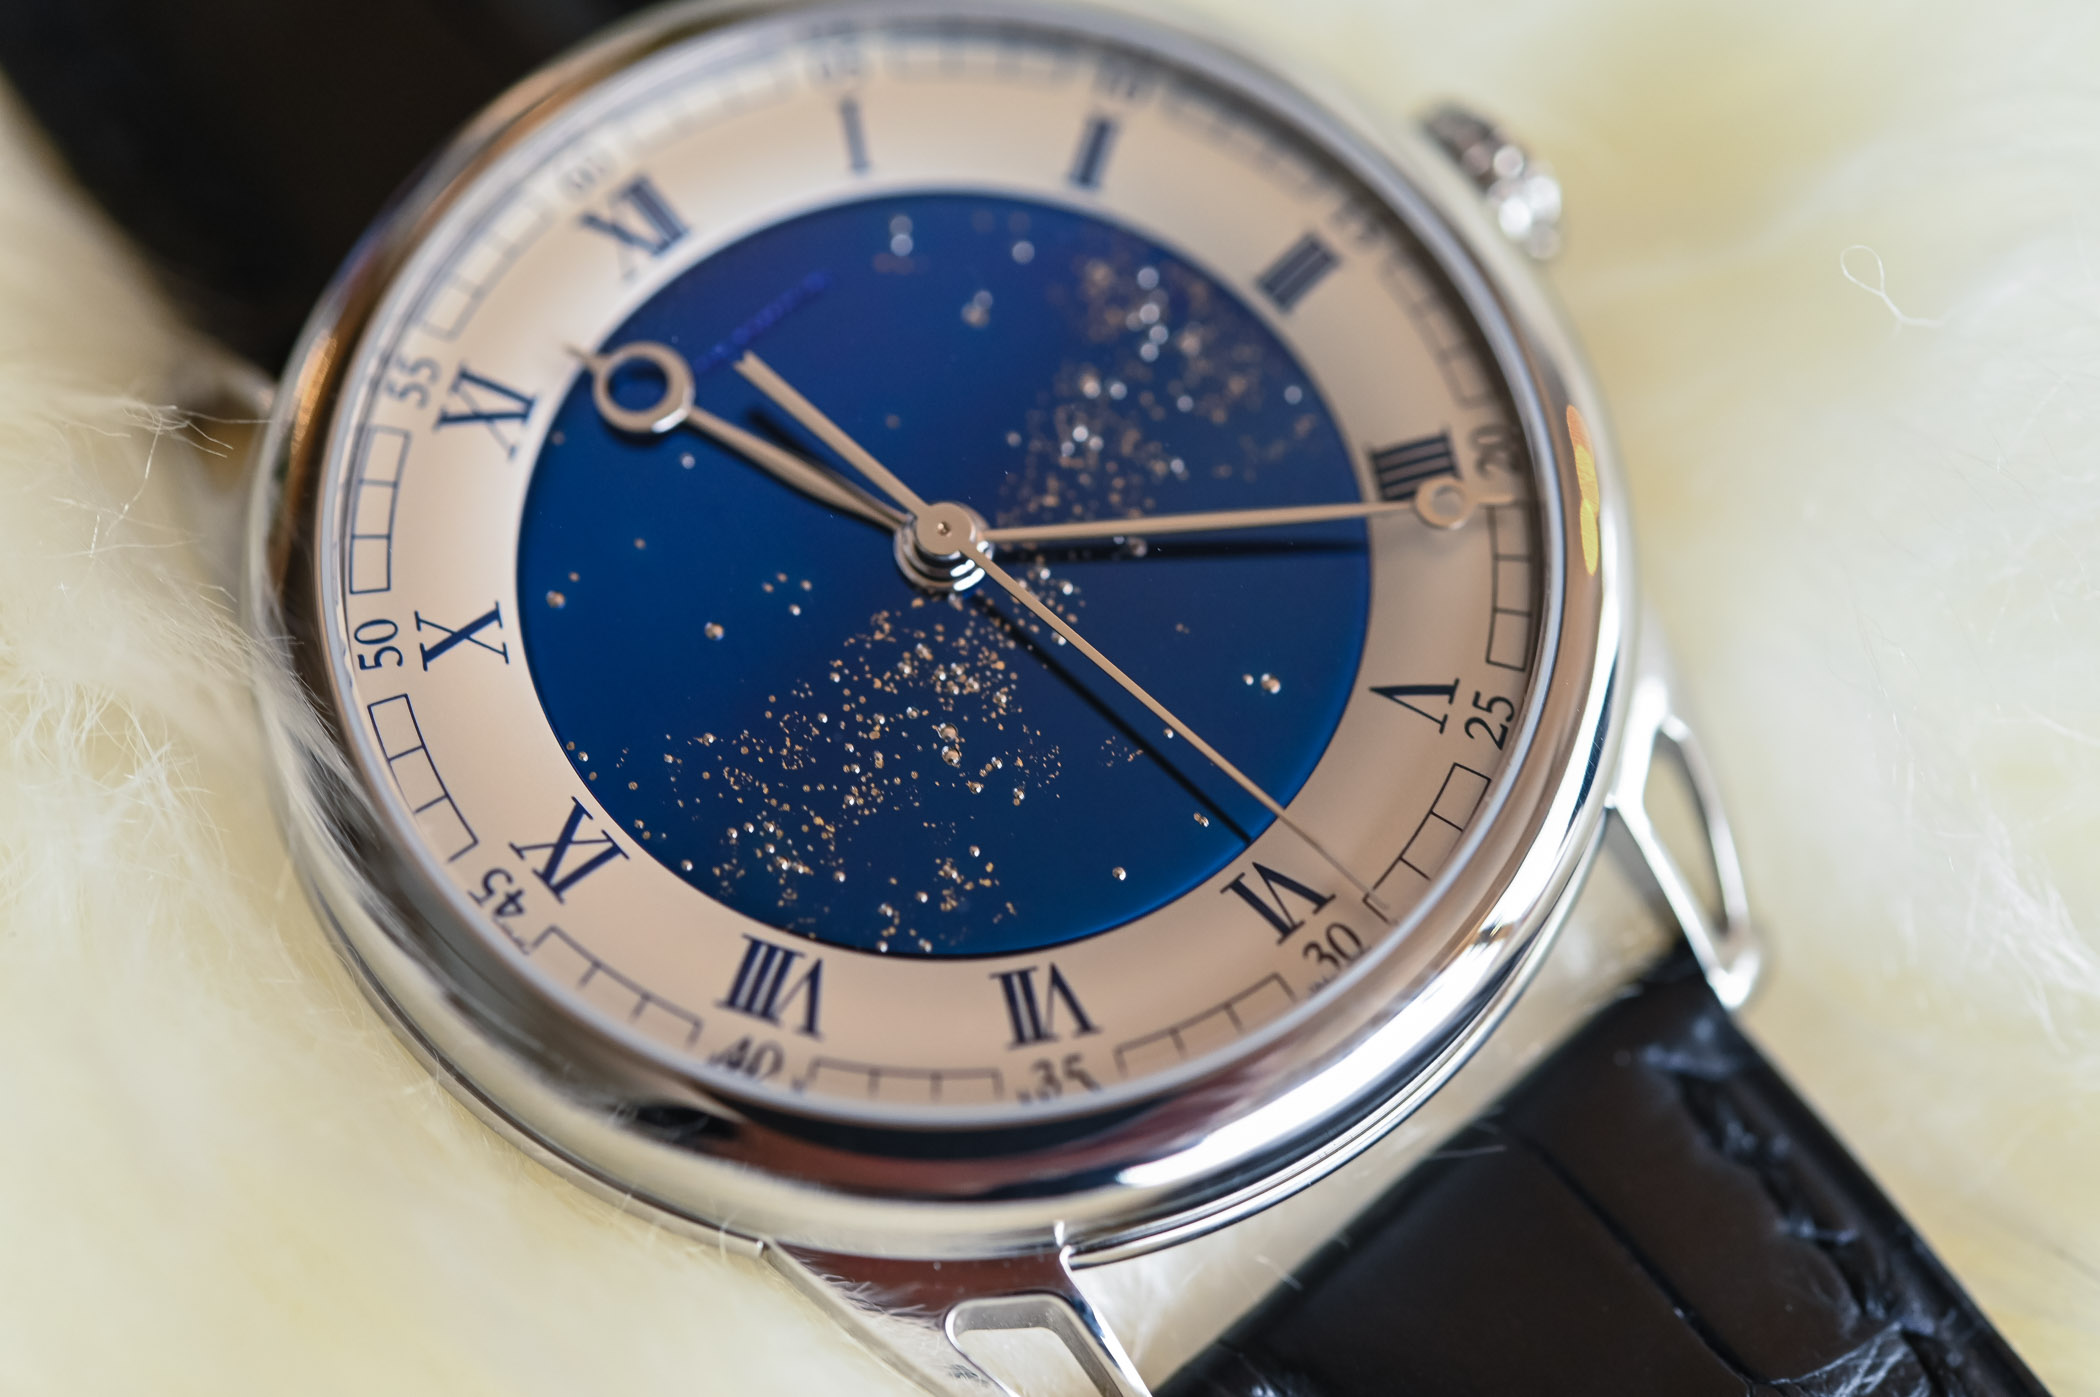 De Bethune DB25 Starry Varius Chronometre Tourbillon - 11